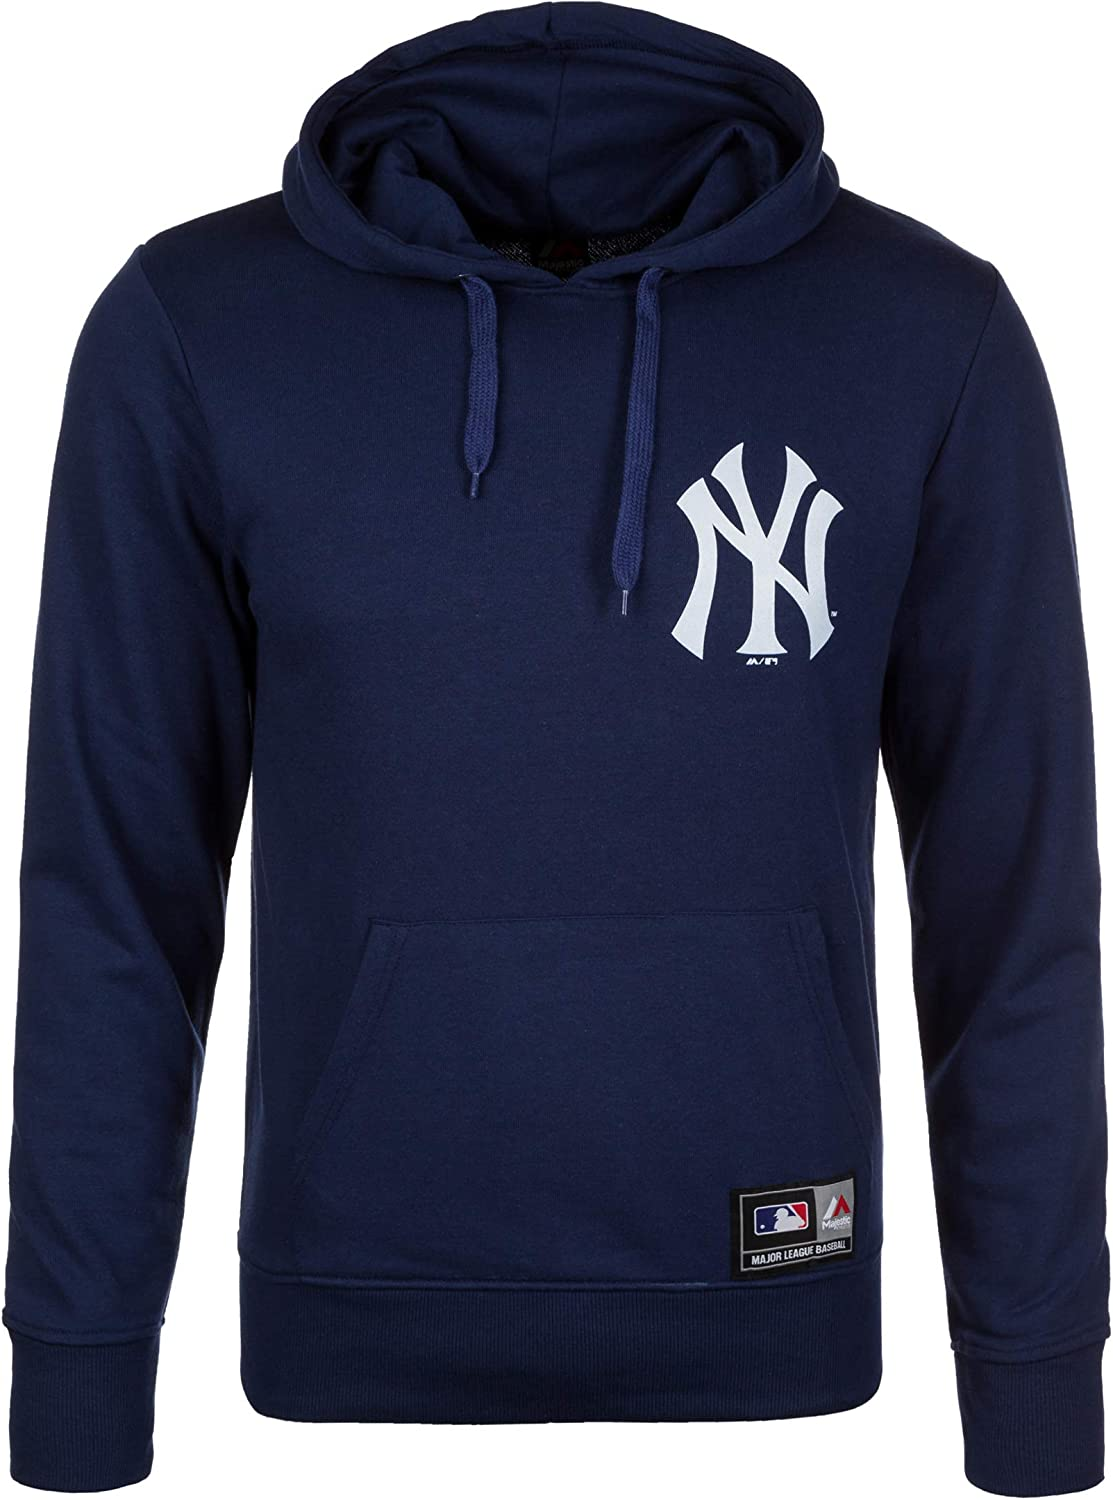 Fanatics MLB New York Yankees Kapuzenpullover Herren L